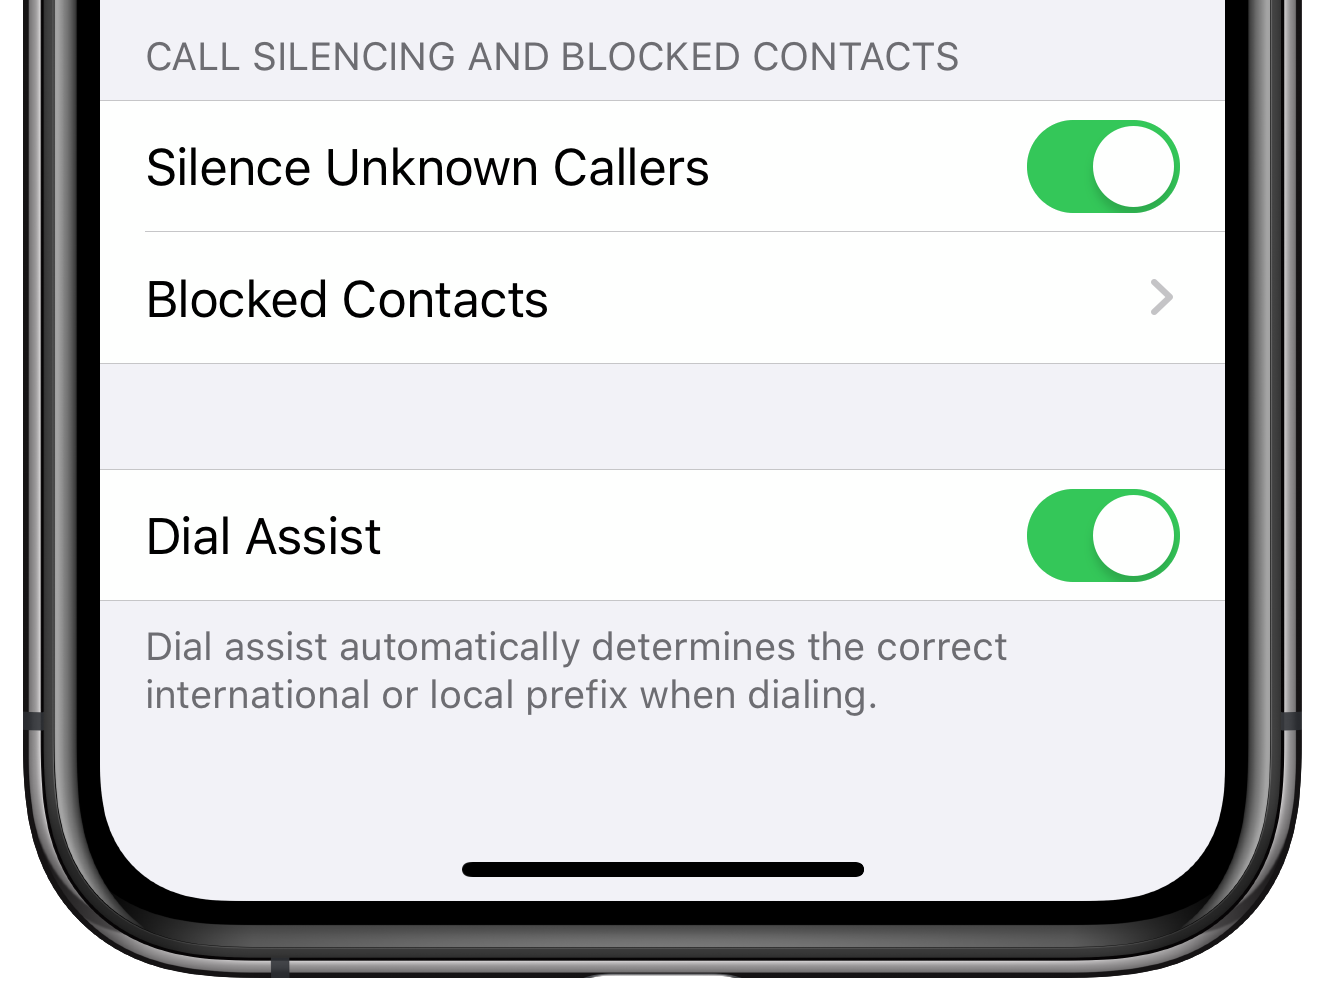 Silencing unknown callers on iPhone in iOS 13